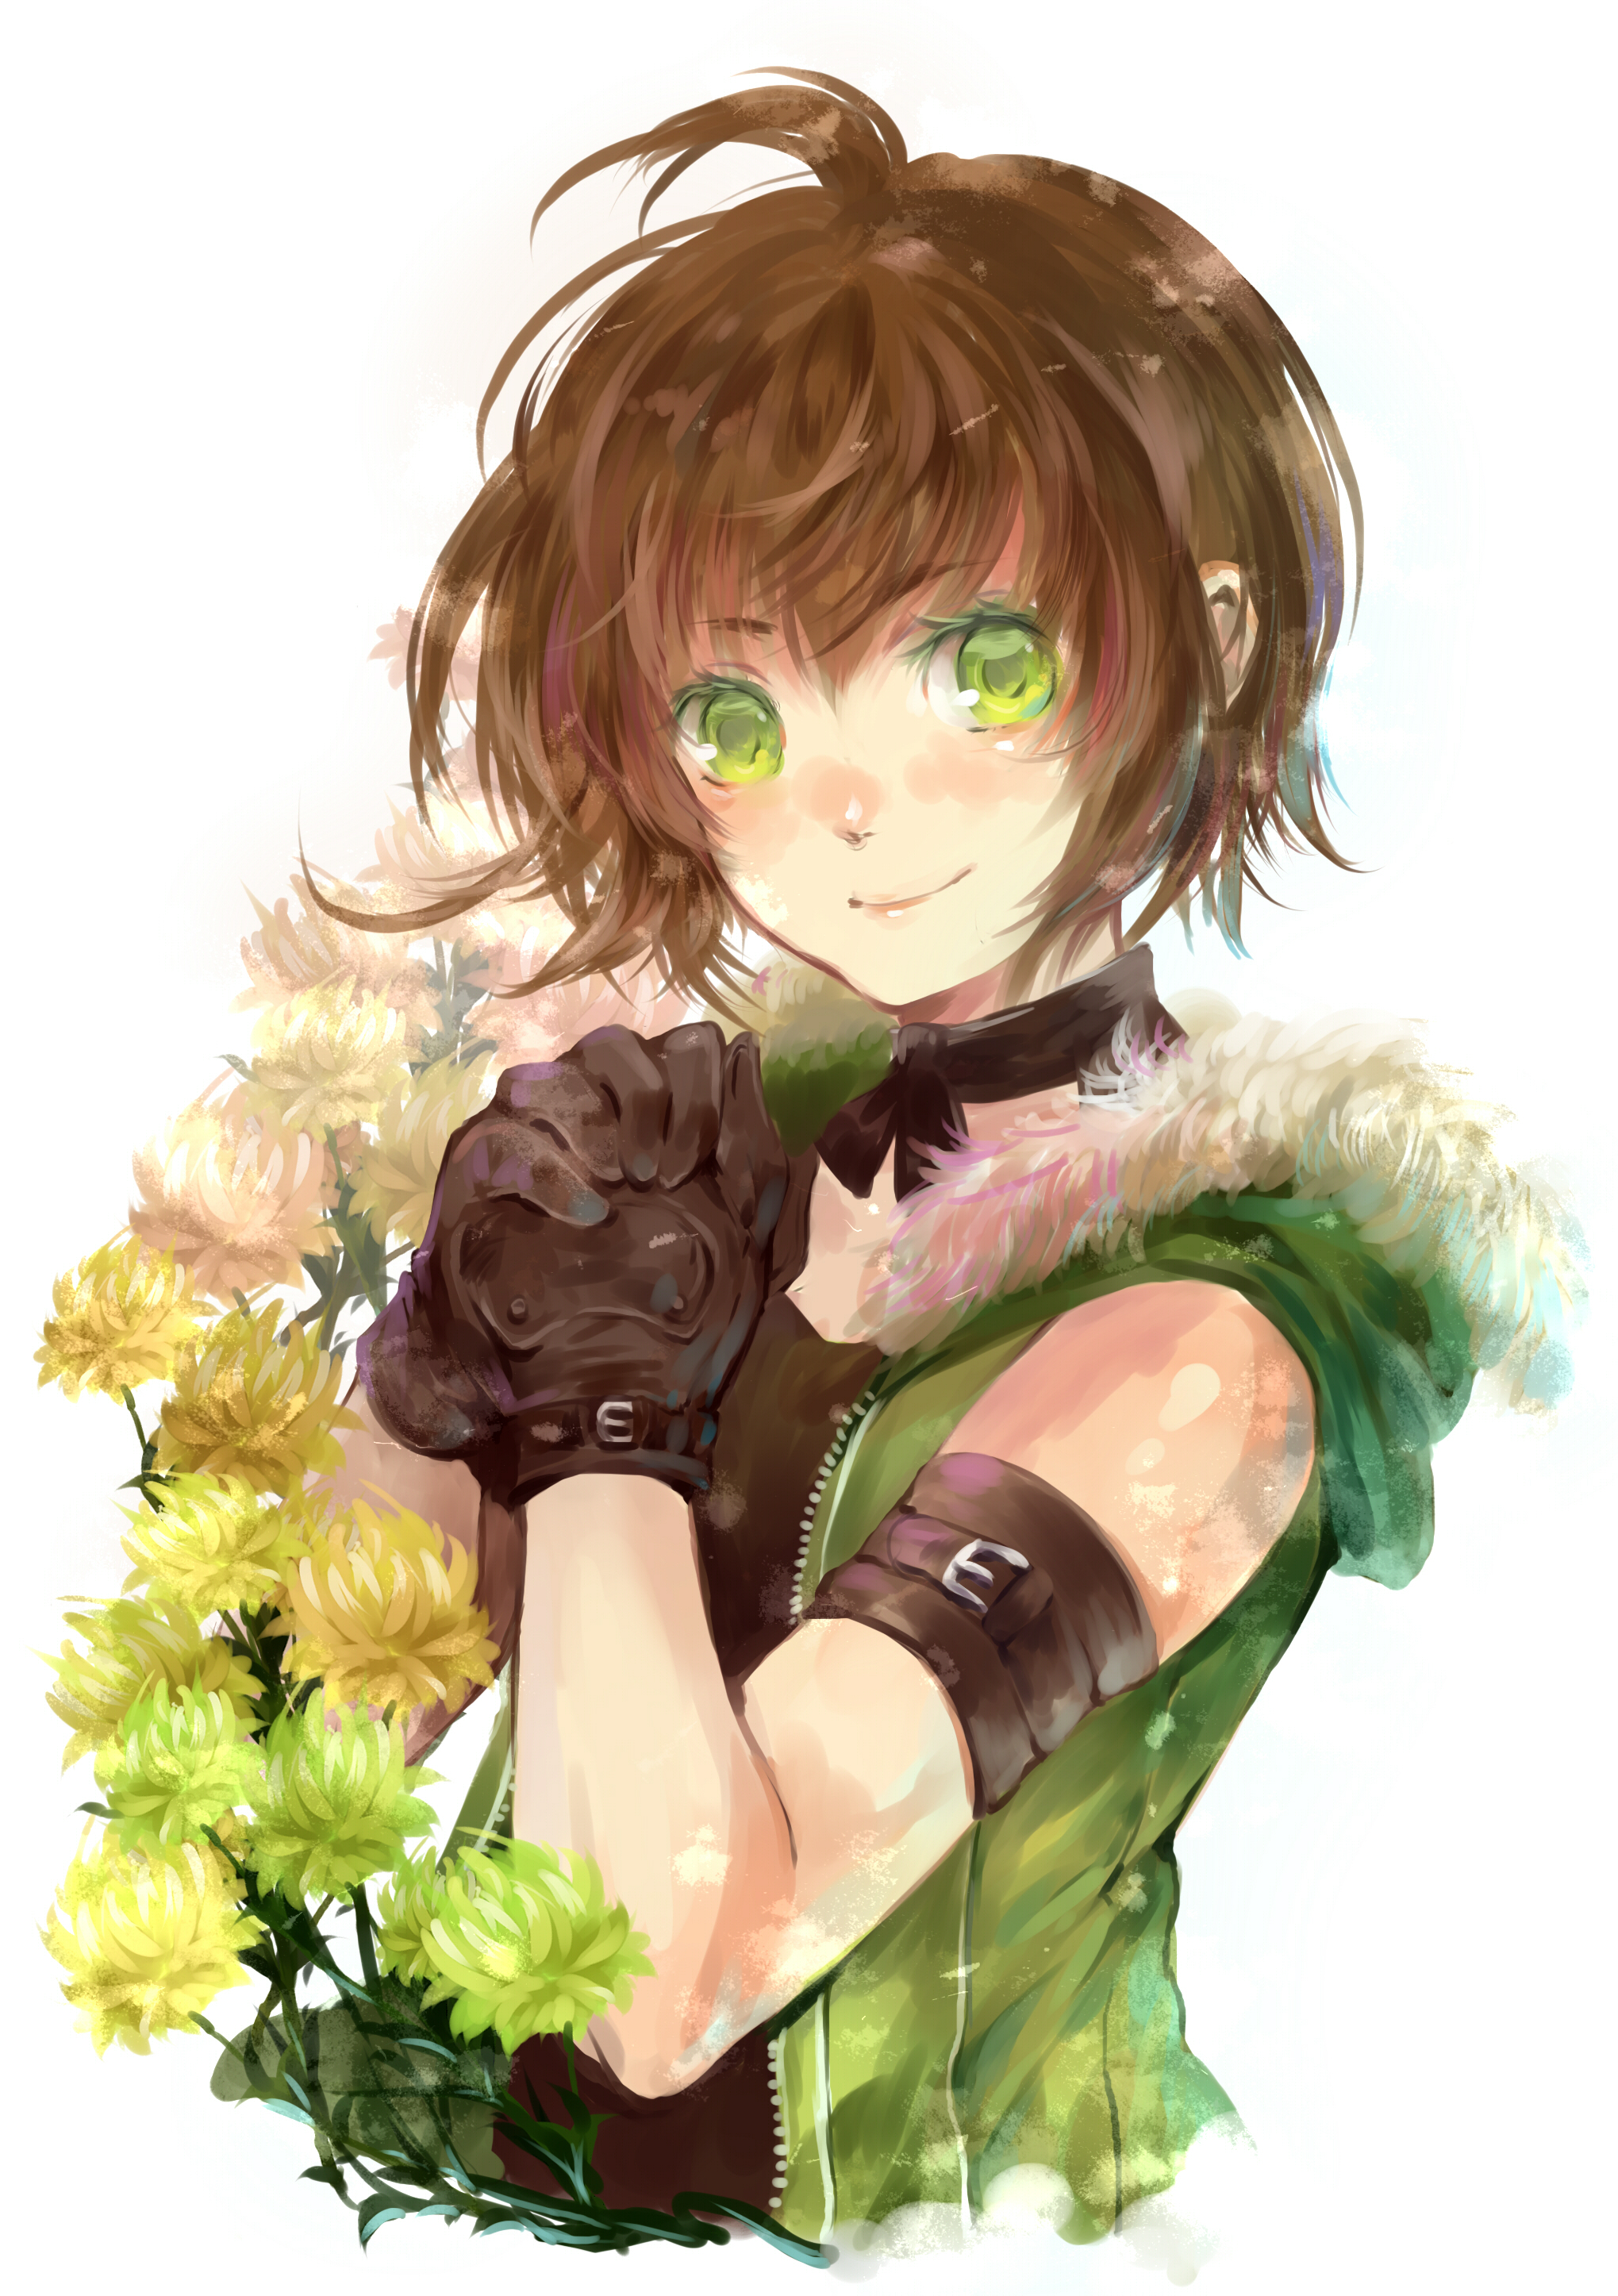 Tomboy Cute Anime Girl Short Brown Hair 2039x2893 Download Hd Wallpaper Wallpapertip